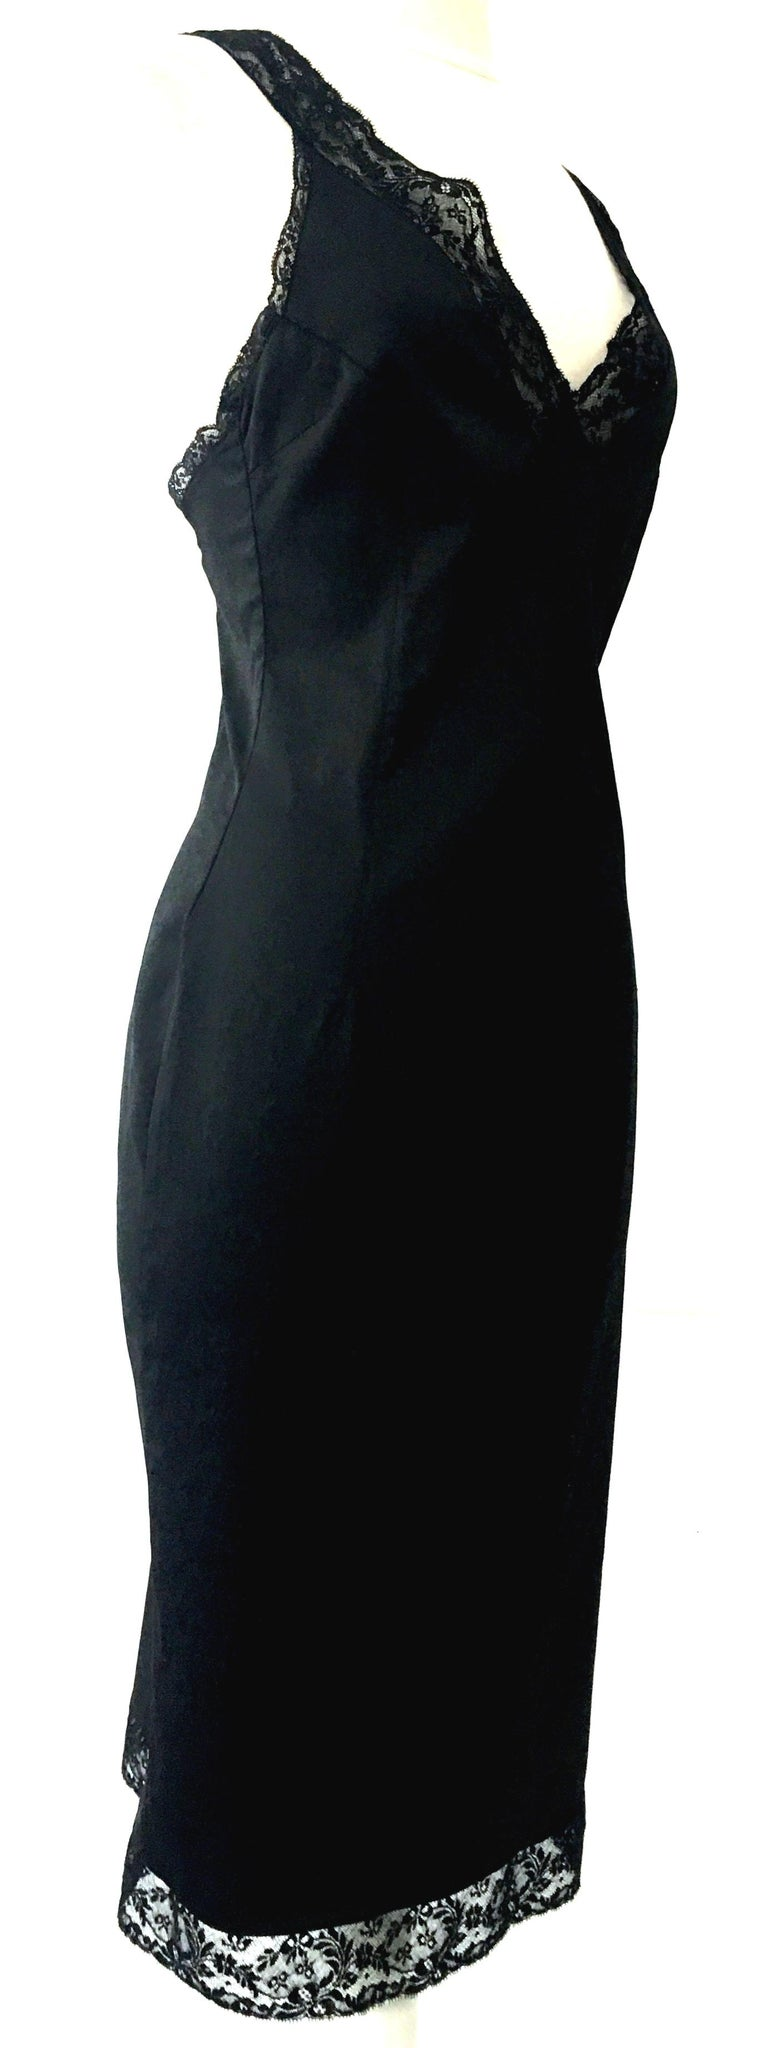 90'S Italian  Dolce & Gabbana Black Fitted Slip Style Dress Sz-46 In Good Condition For Sale In West Palm Beach, FL